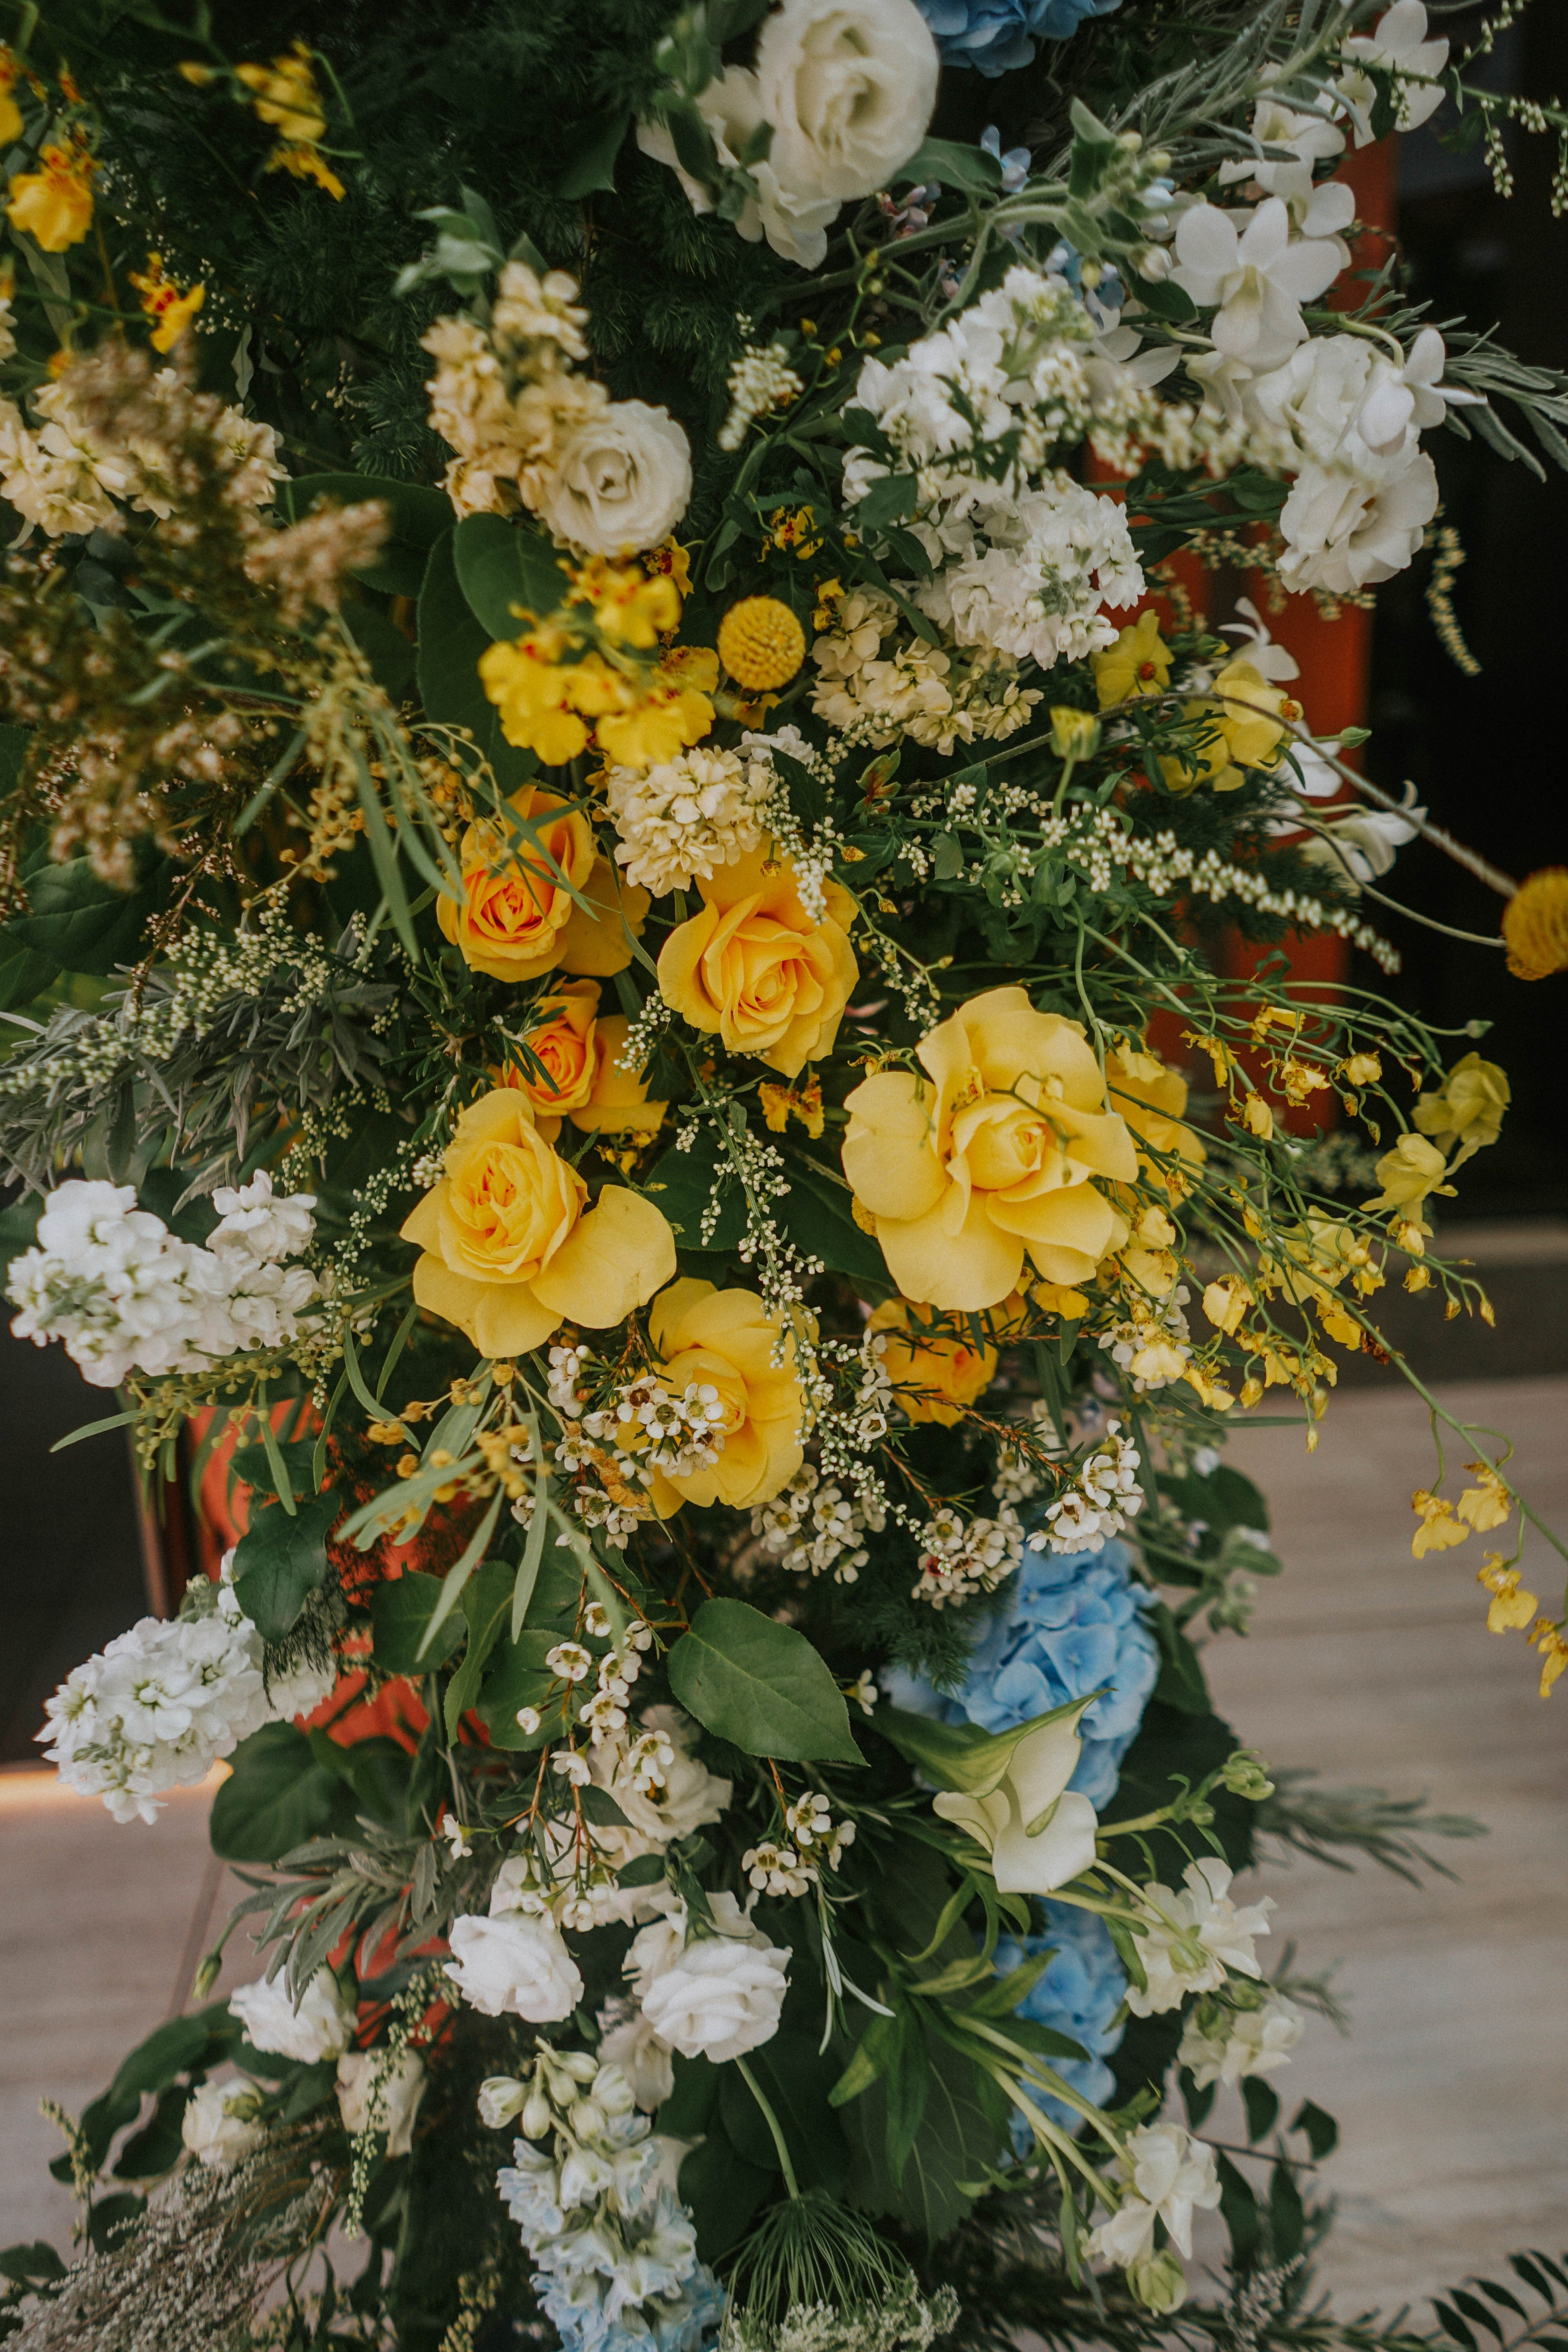 Close up shot of yellow roses, delphiniums, white queen anne's lace, and tropical ferns for a wedding ceremony at Wesley Methodist Church chapel